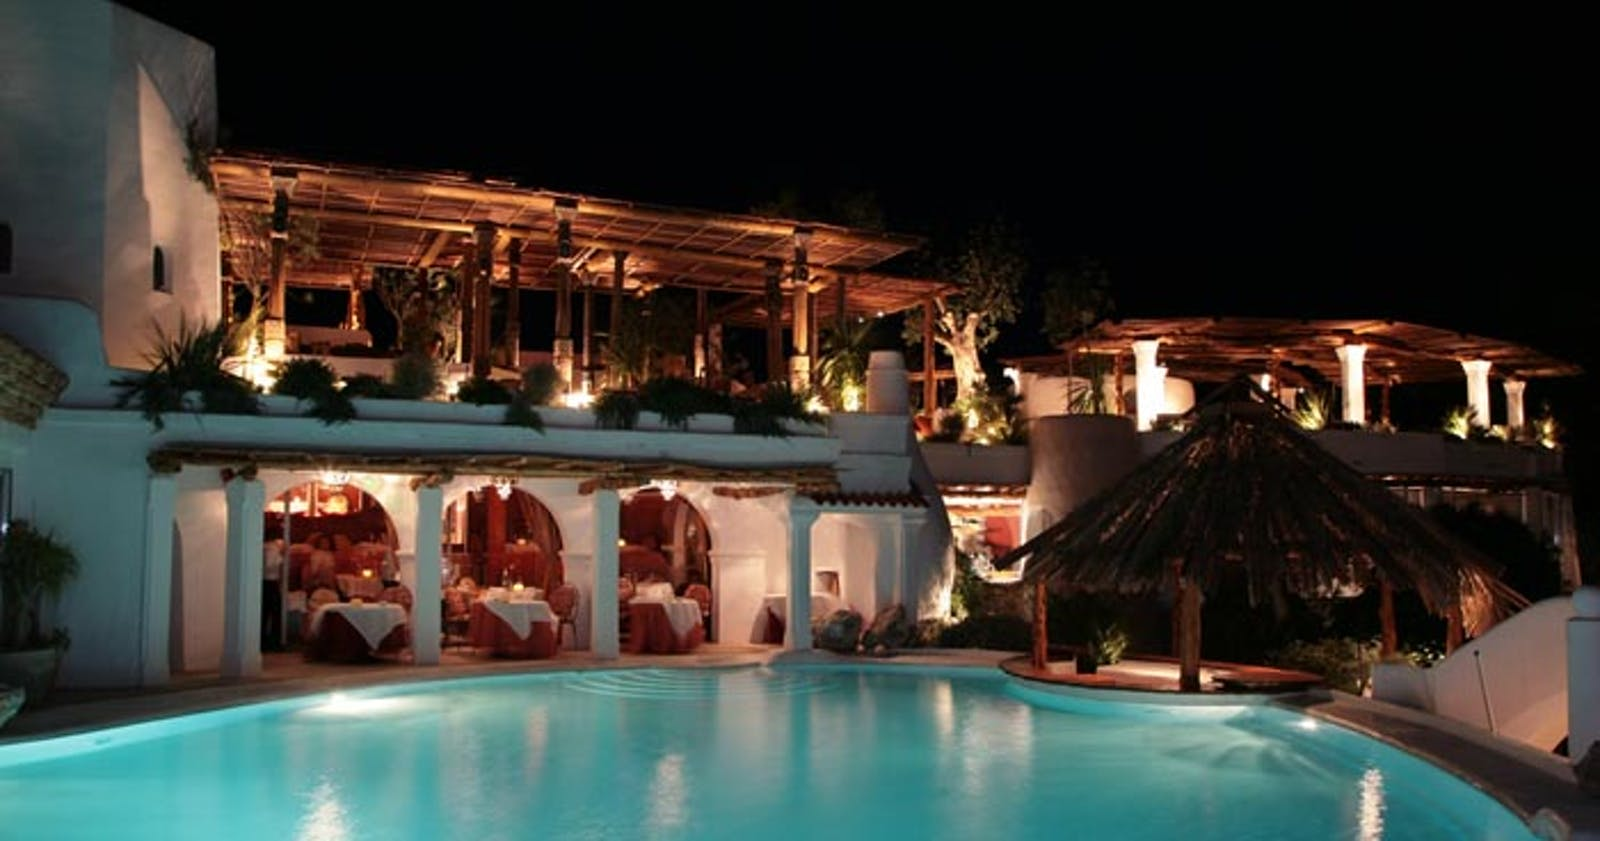 Swimming Pool at Hotel Hacienda Na Xamena, Ibiza, Spain